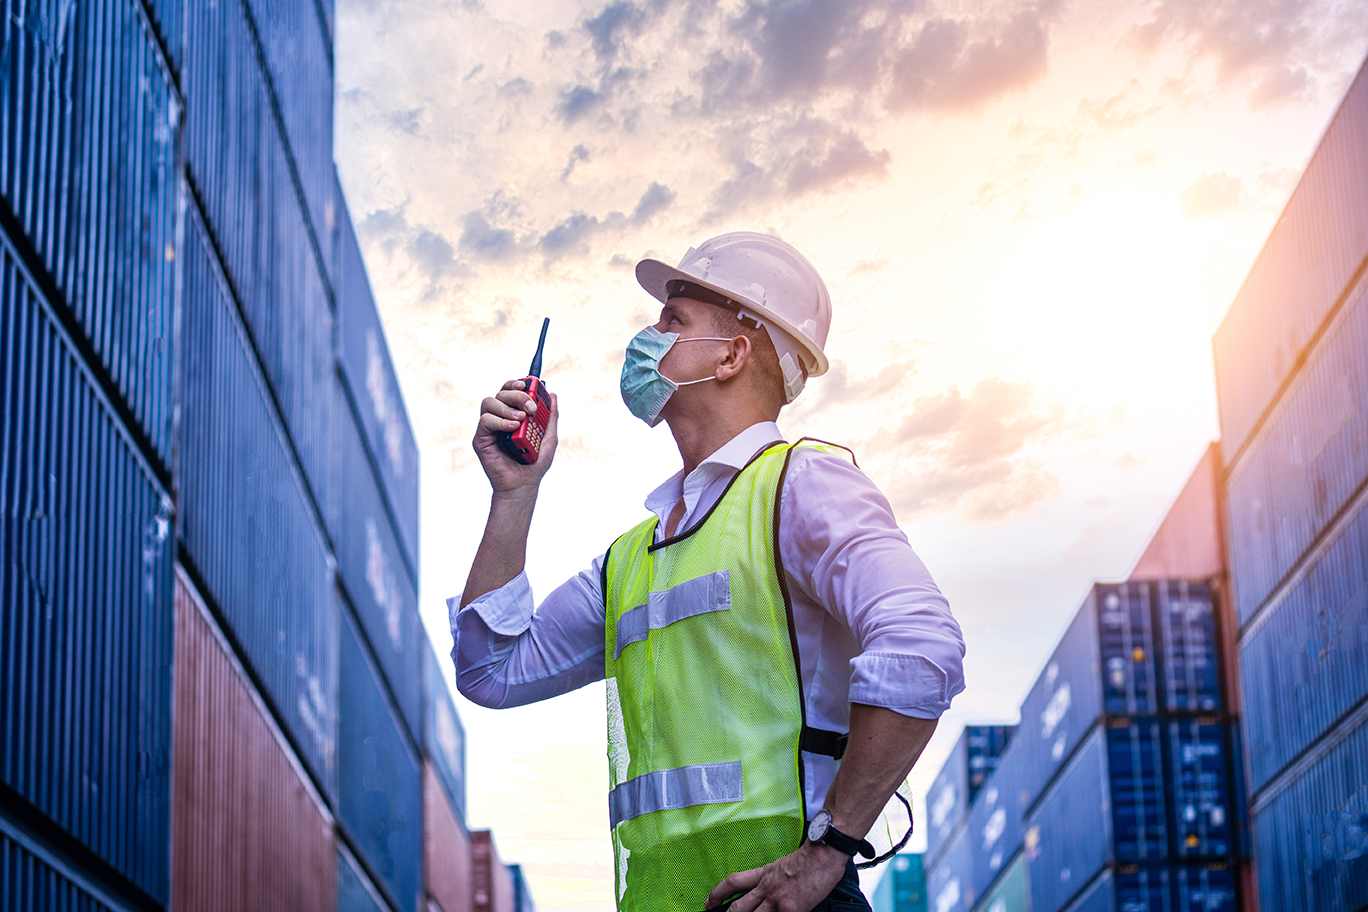 man in hard hat wearing PPE sustainable mask standing amongst shipping containers using a walkie talkie